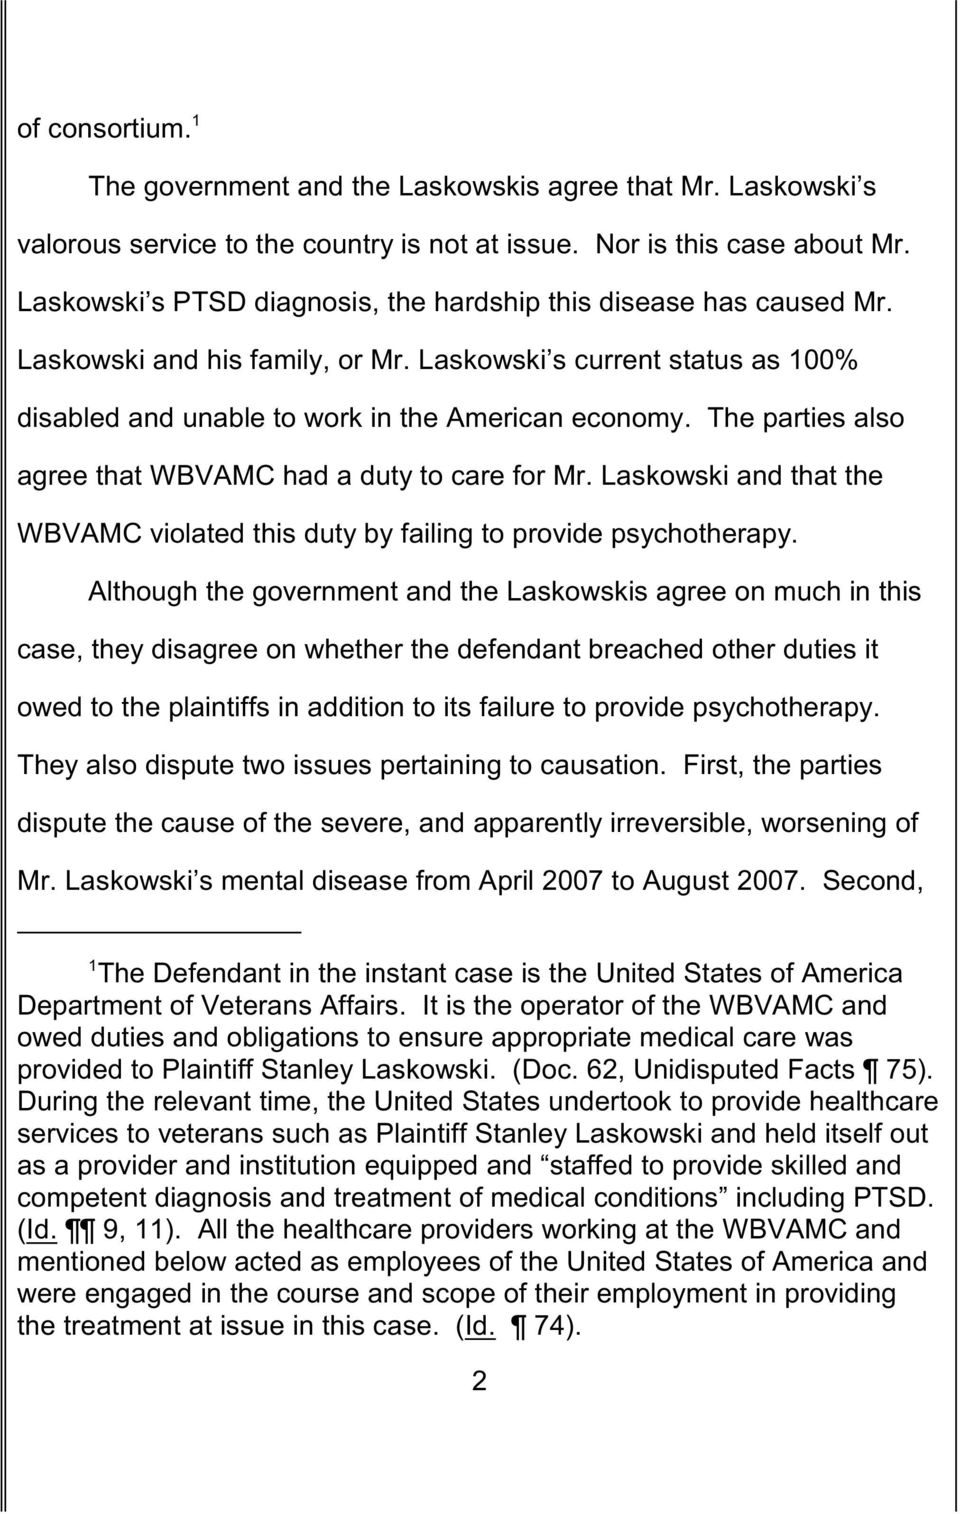 The parties also agree that WBVAMC had a duty to care for Mr. Laskowski and that the WBVAMC violated this duty by failing to provide psychotherapy.